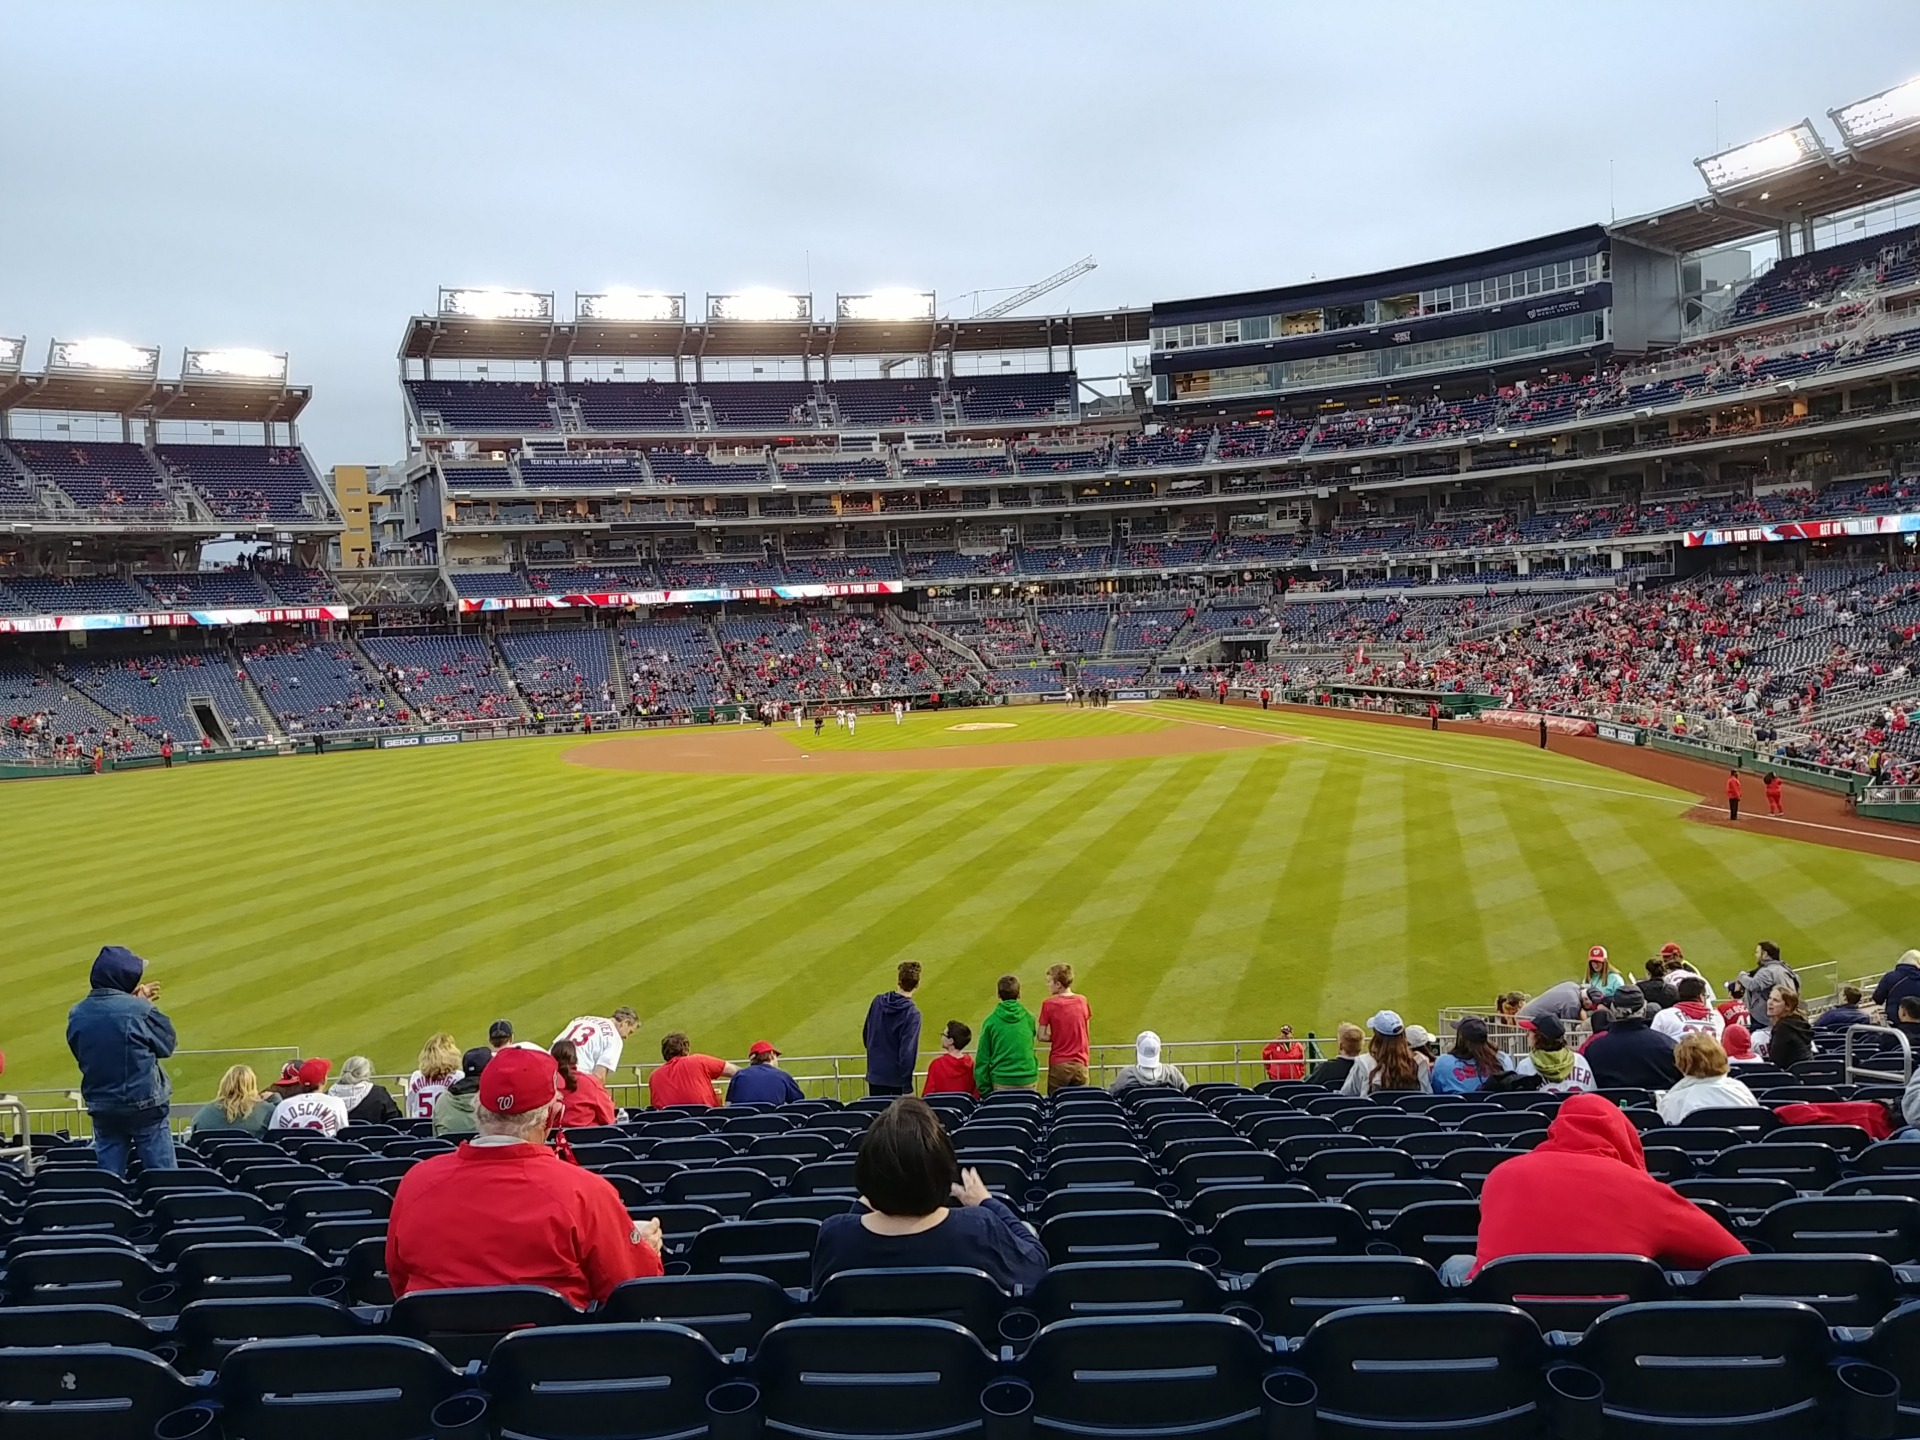 Nationals Park Section 102 Row CC Seat 9-10